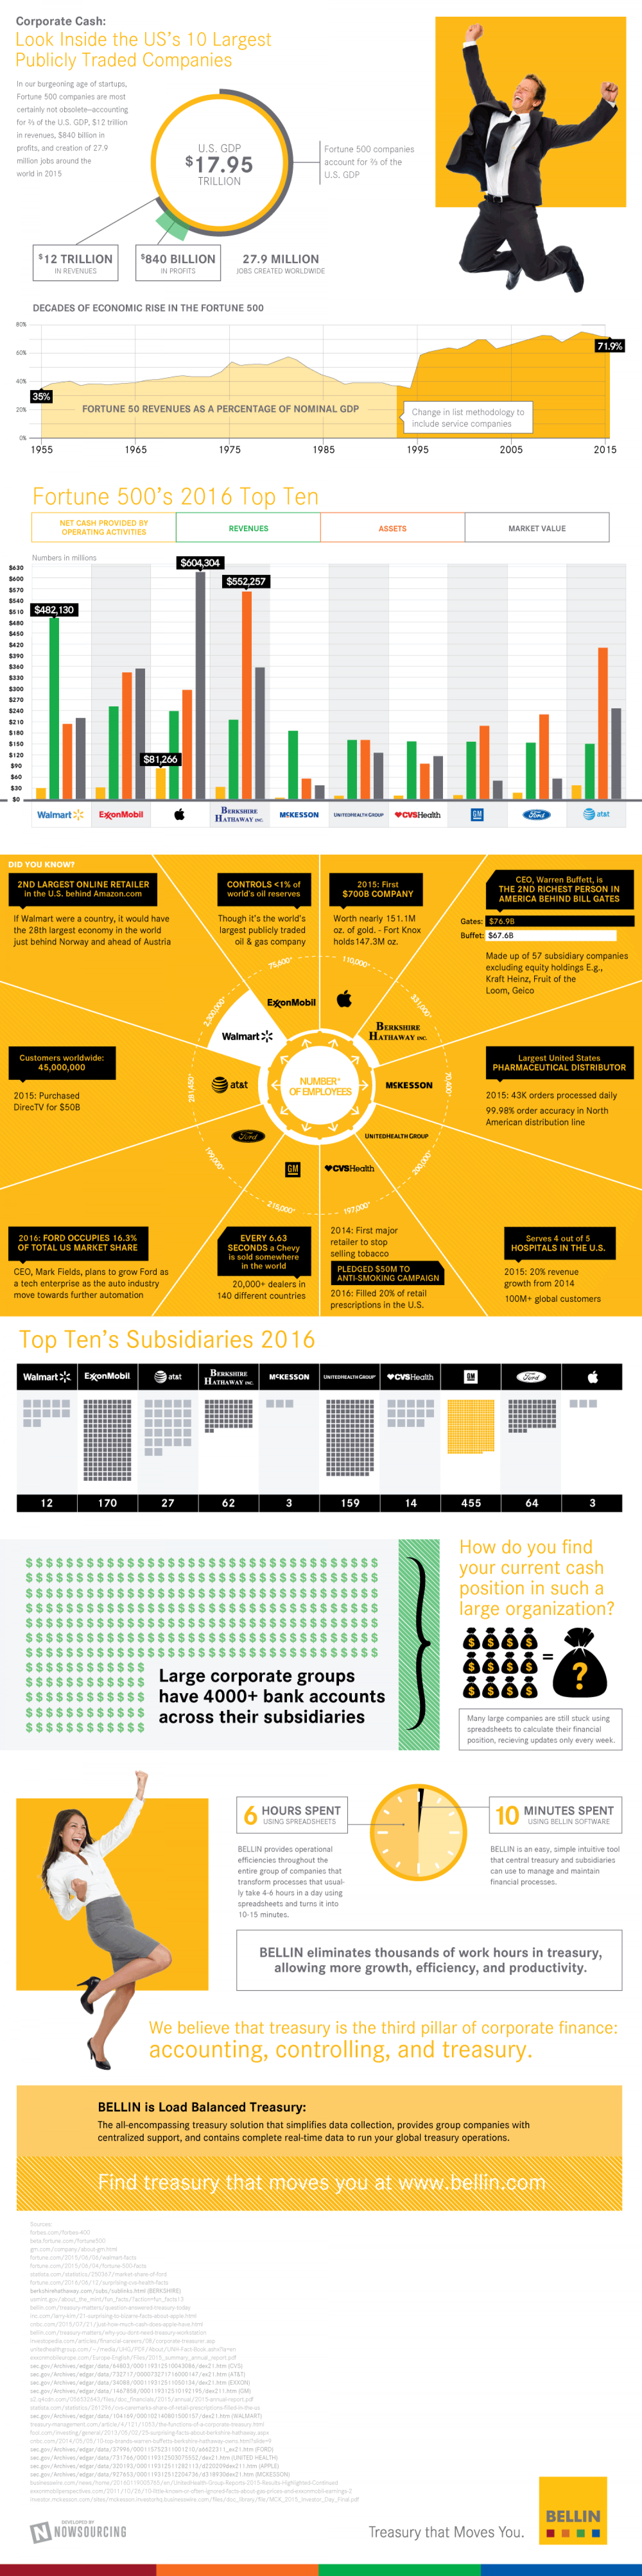 Corporate Cash Flow Management In Fortune 10 Corporations Infographic